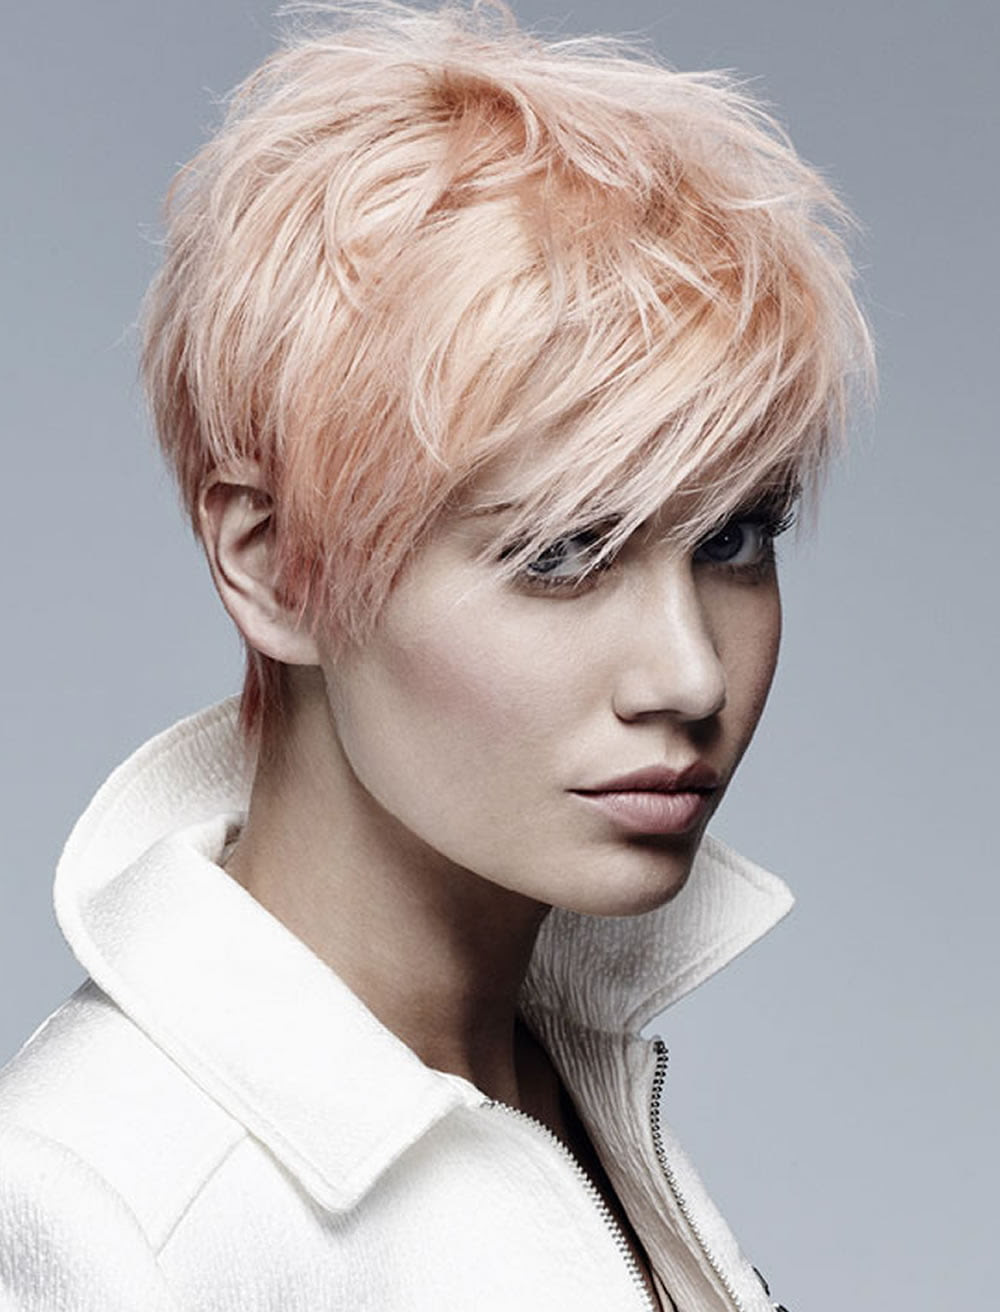 2018 Short Haircut Trends and Hair Colors for Female – Page 9 – HAIRSTYLES